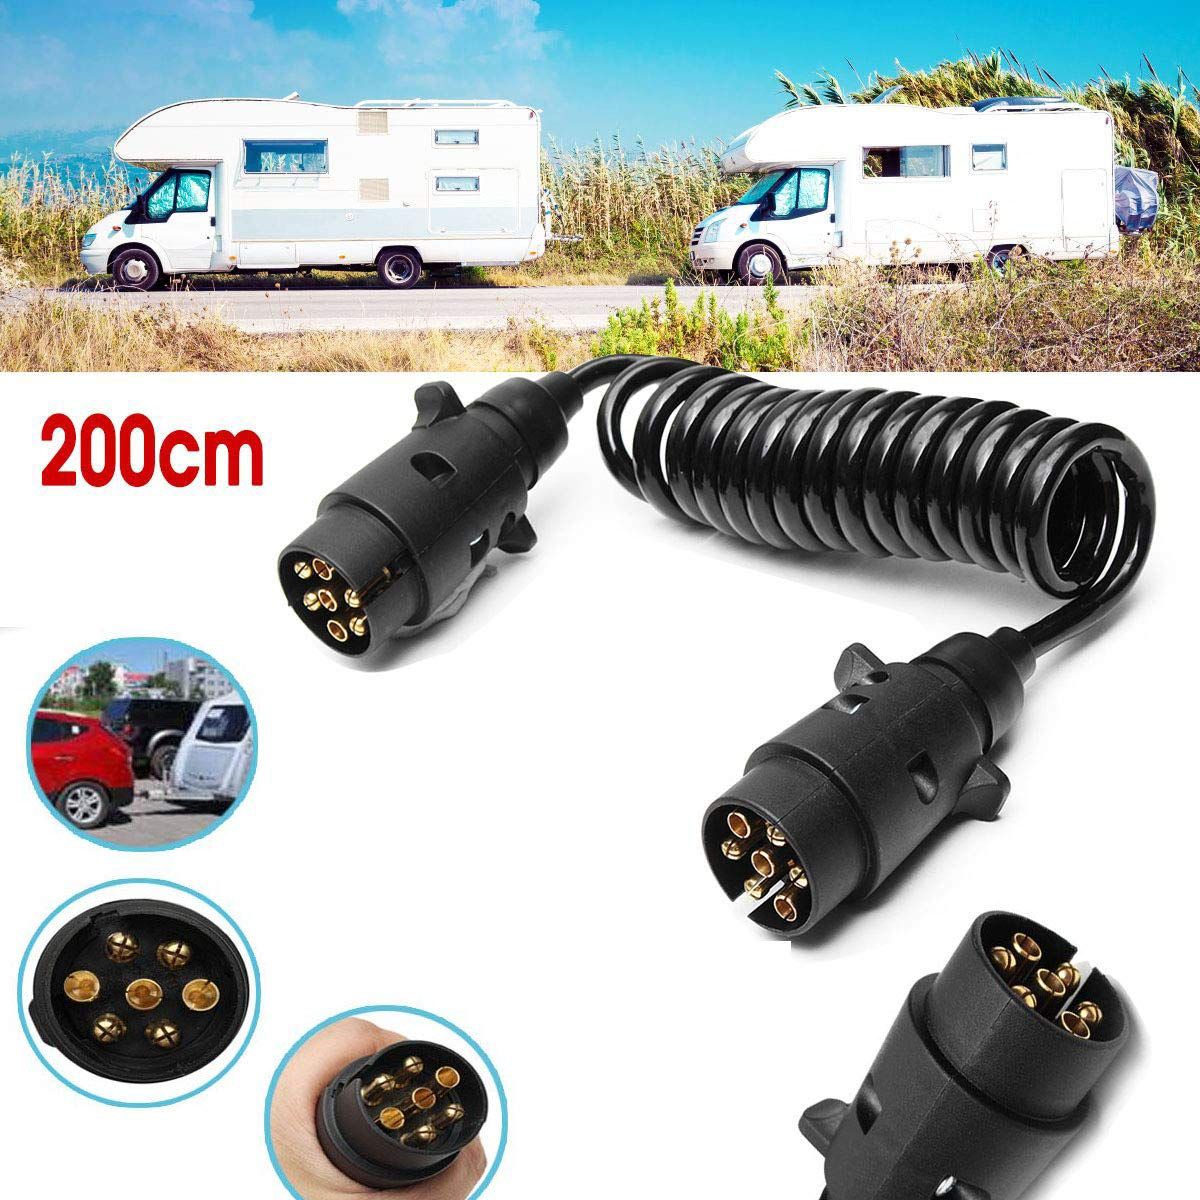 WOVELOT 2M 7 Pin Car Towing Trailer Light Board Extension Cable Lead Truck Plug Socket Wire Part Couplings Circuit Plug Socket